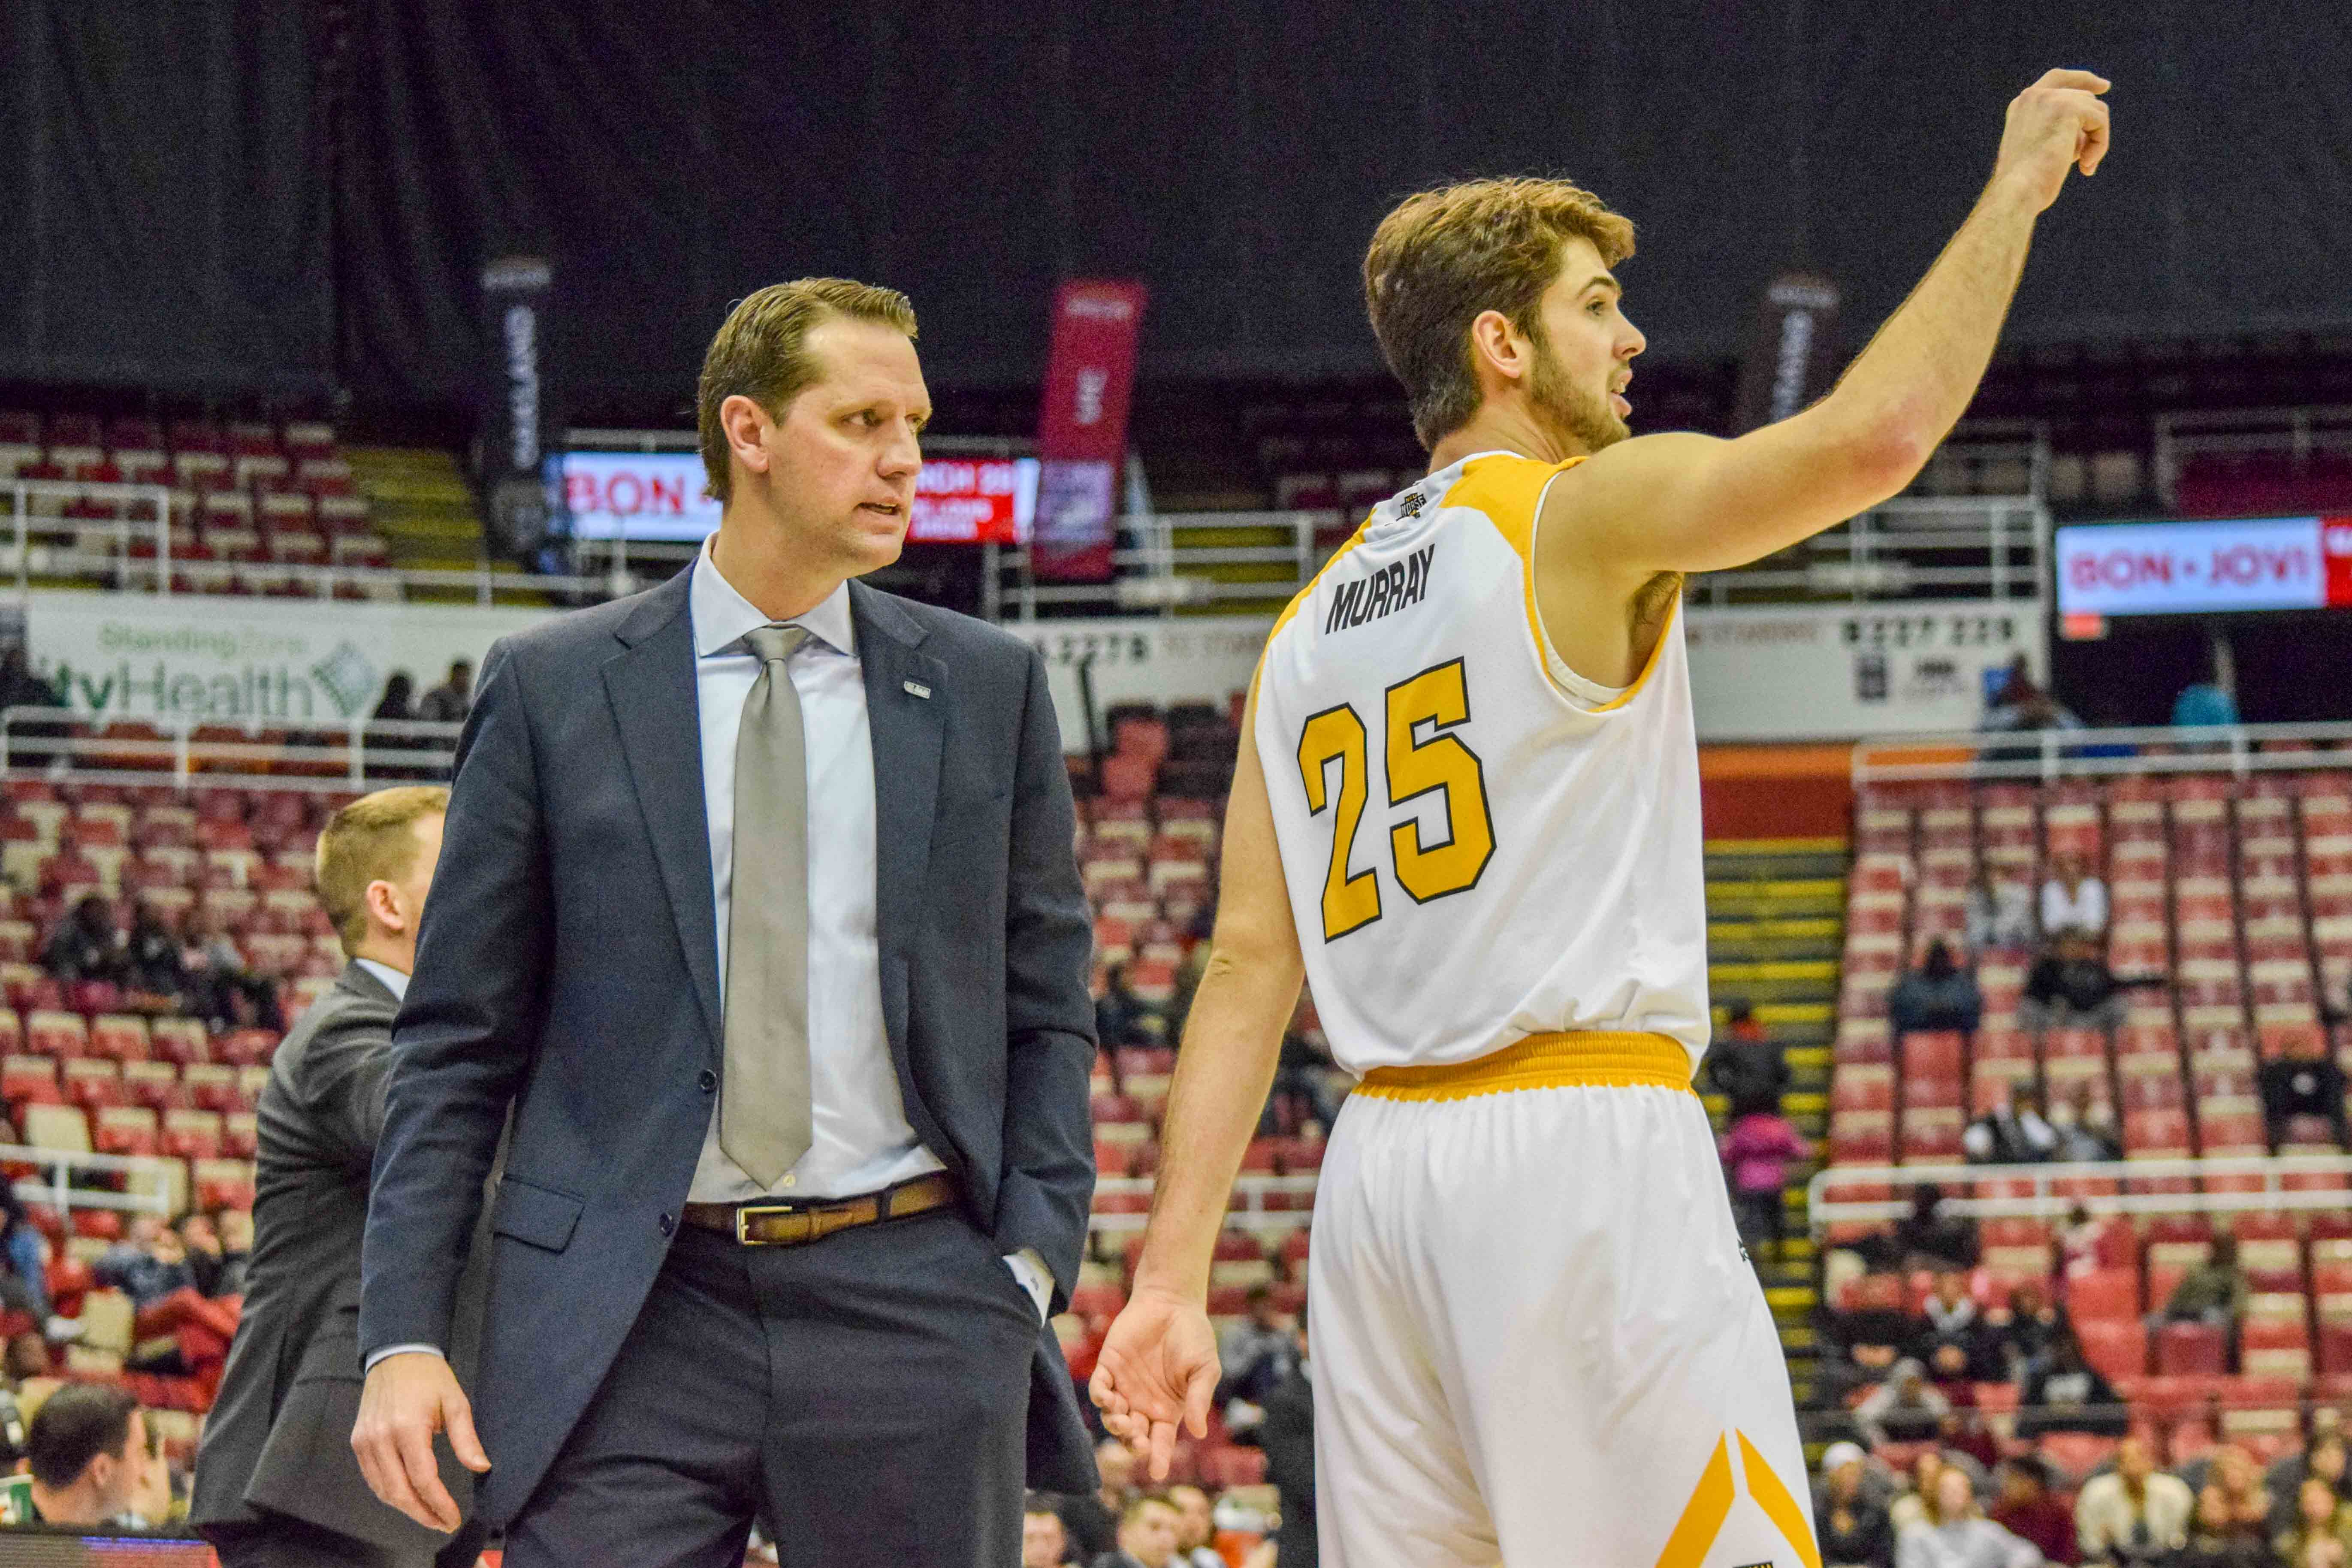 UWM Panthers fall to N. Kentucky in Horizon League Tournament Championship game